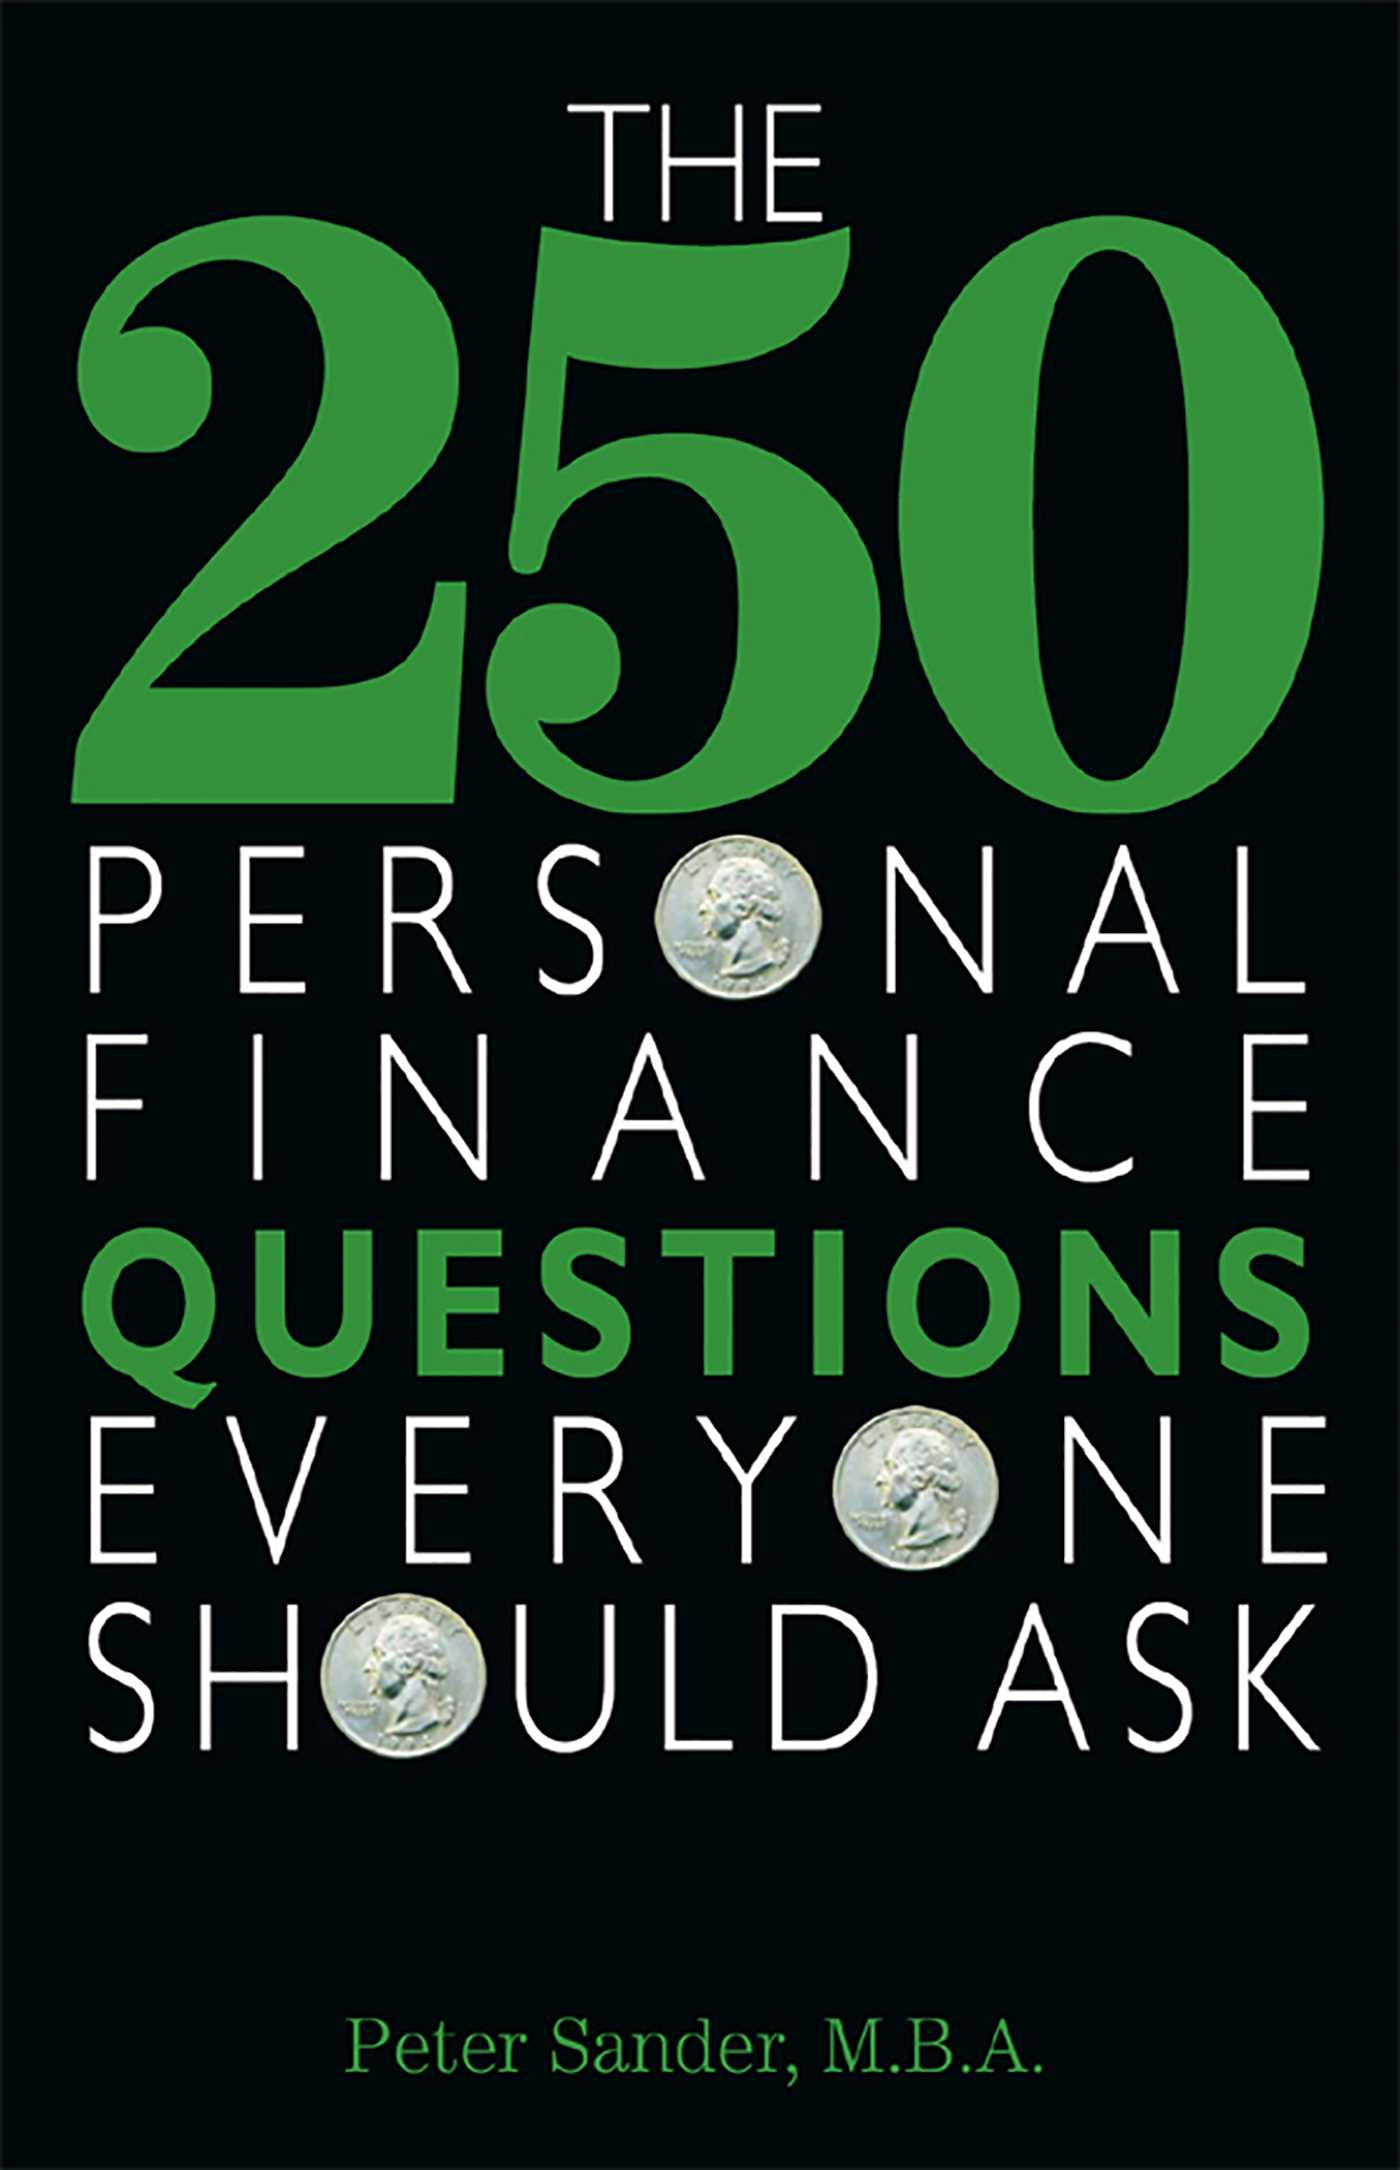 The 250 personal finance questions everyone should ask 9781440518485 hr